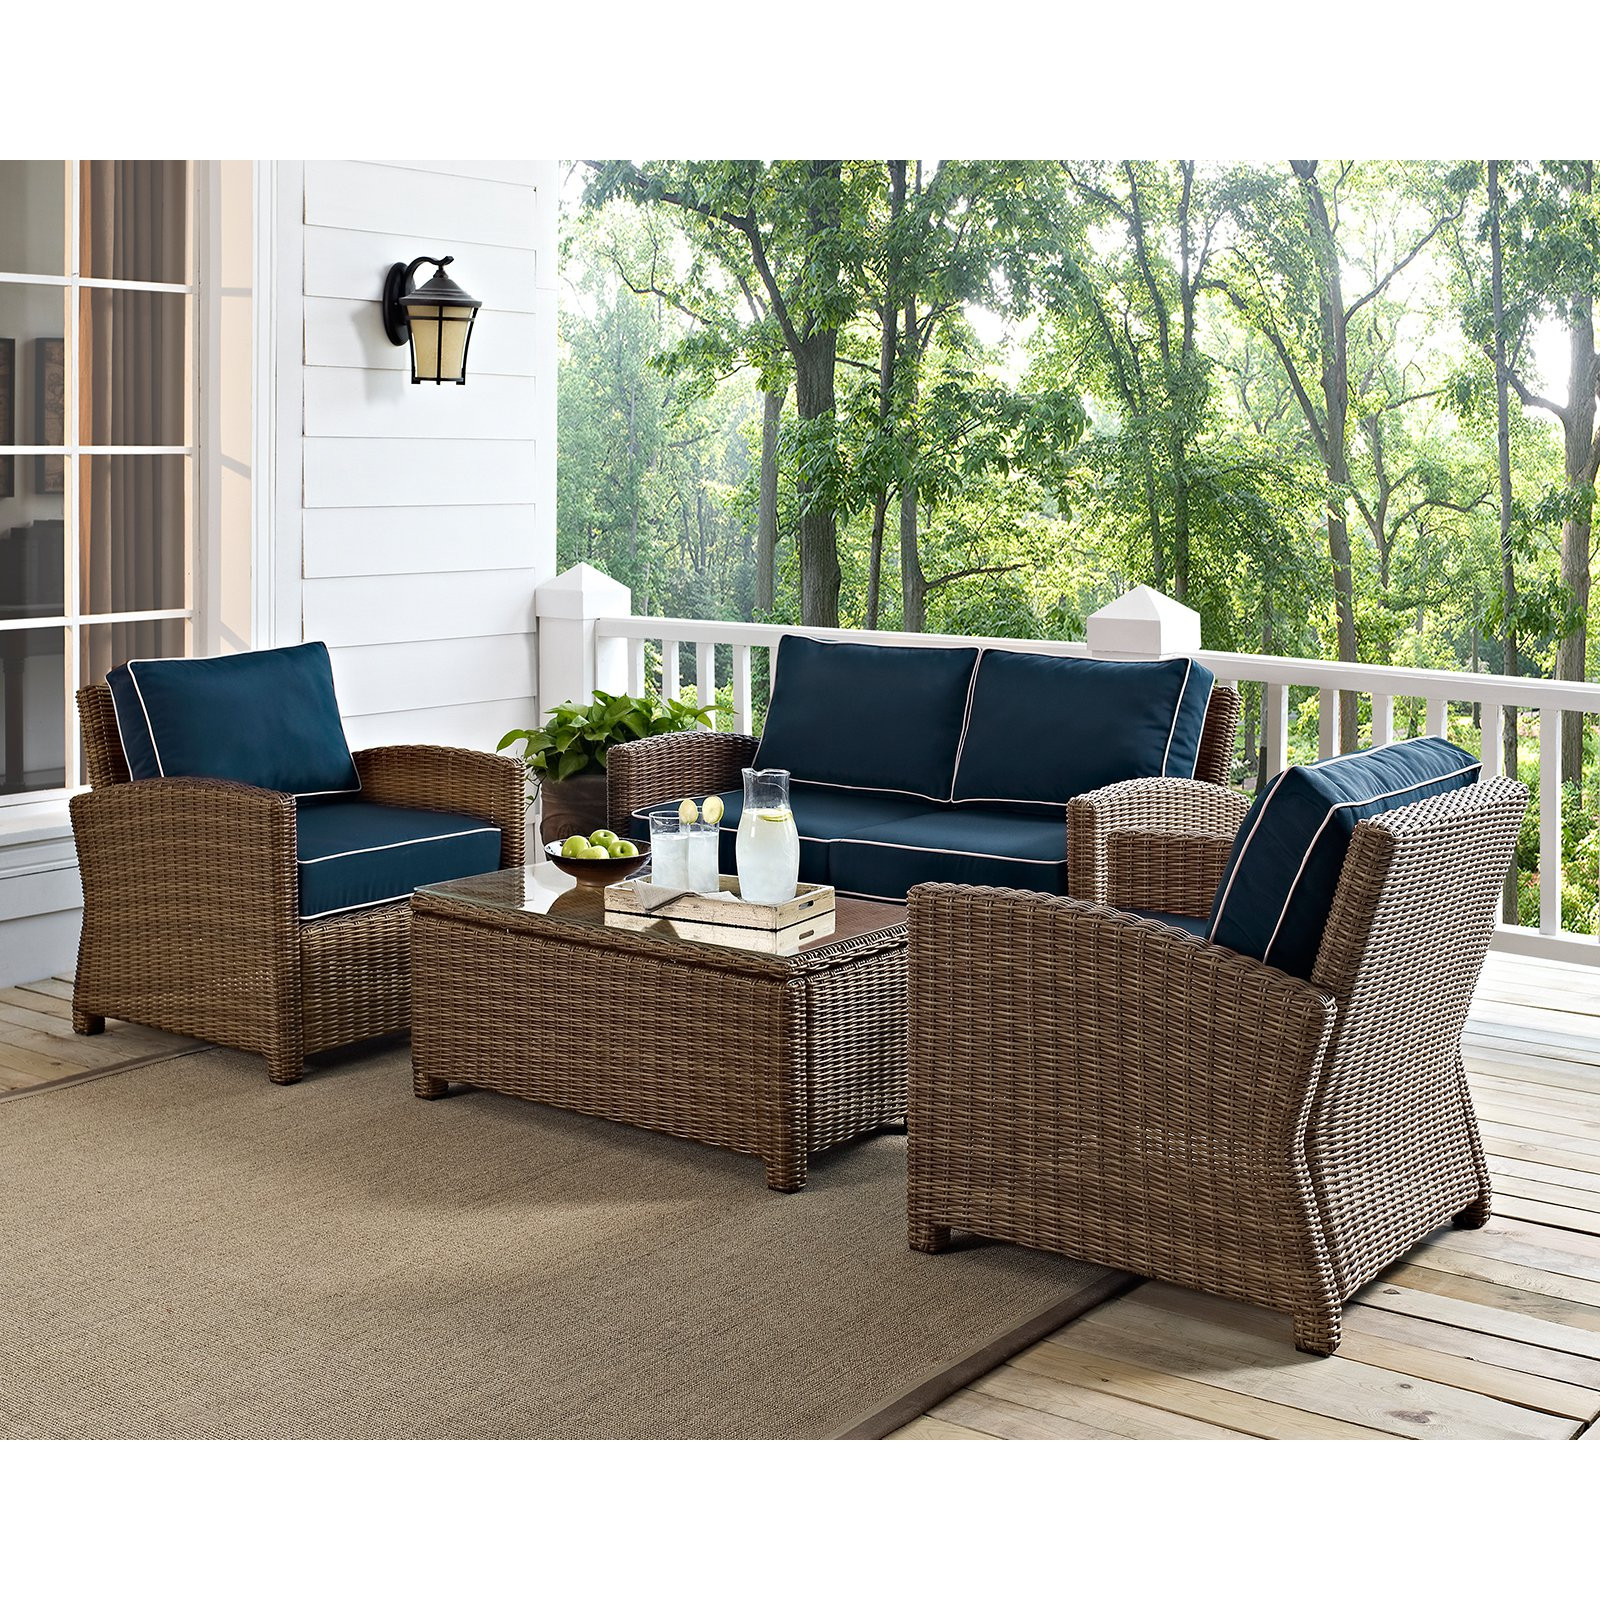 Best ideas about Patio Furniture Sets . Save or Pin Crosley Bradenton 4 Piece Outdoor Wicker Conversation Set Now.